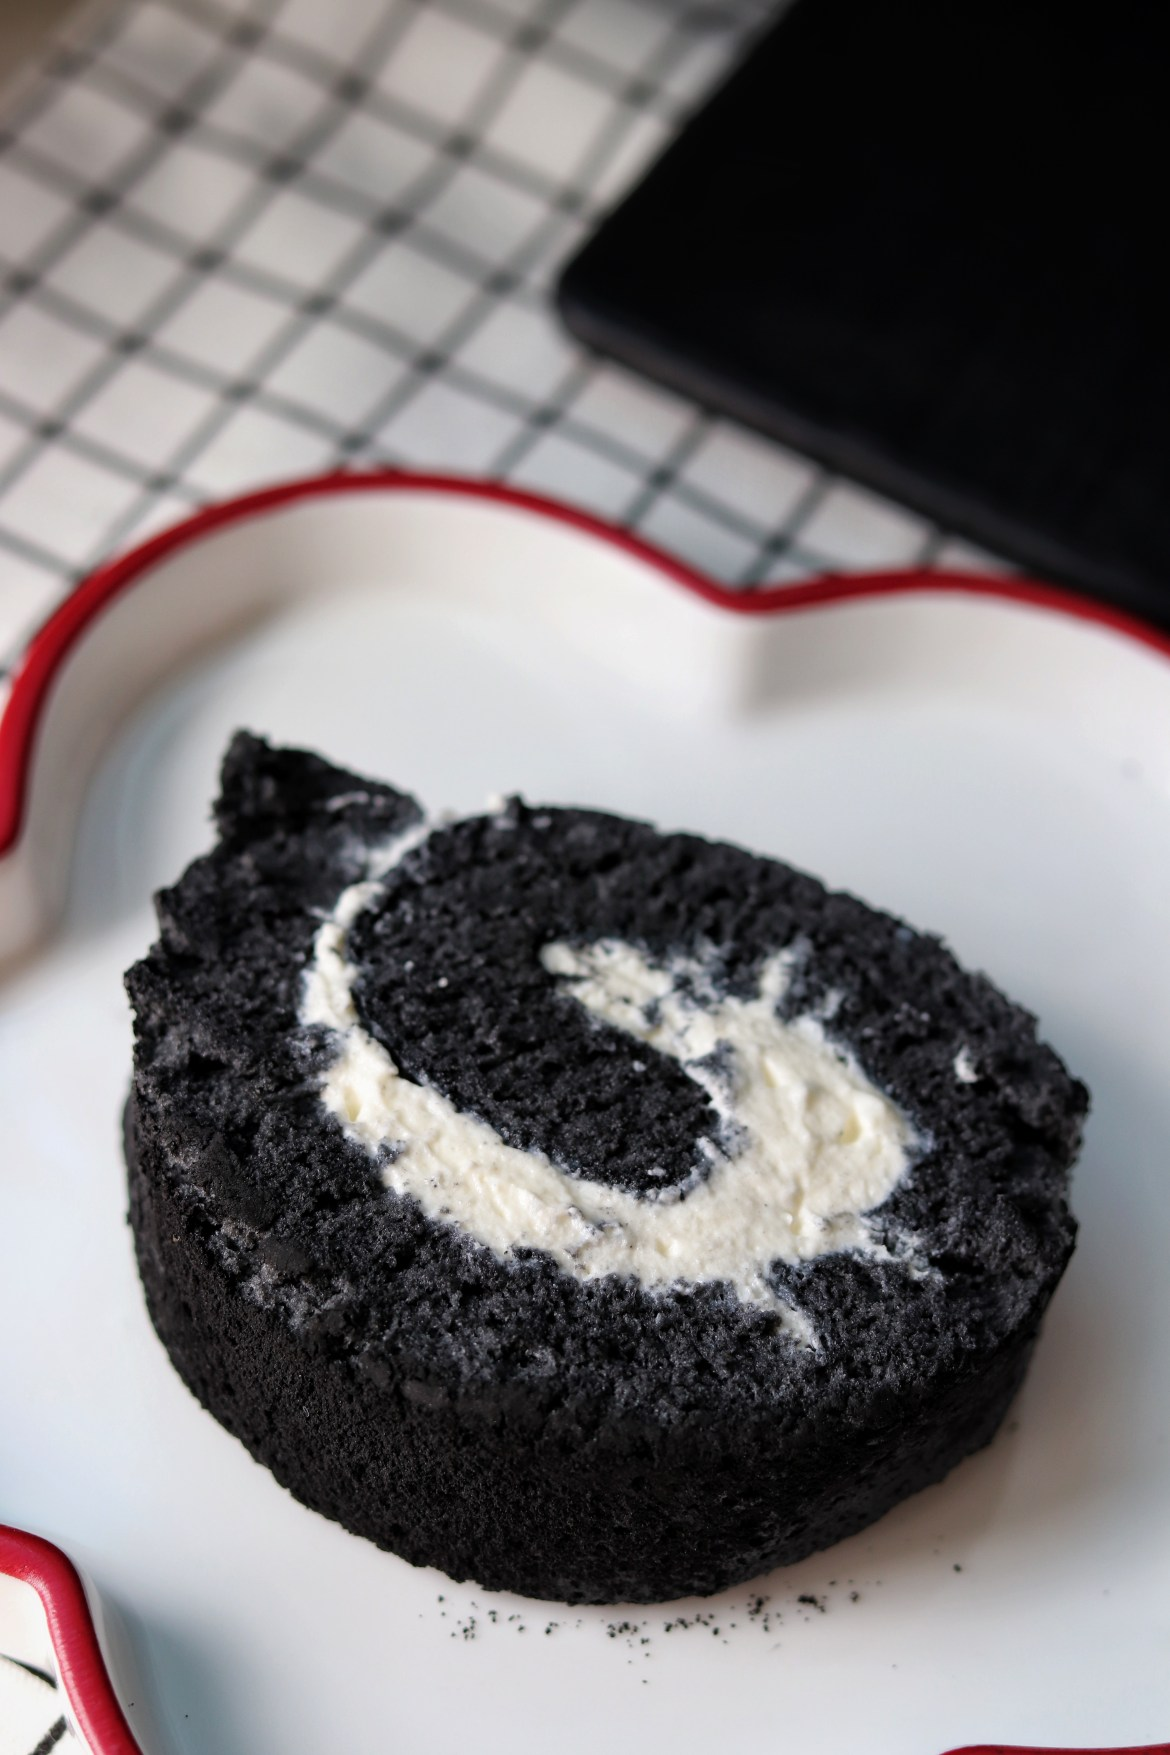 Charcoal Black Sesame Cake Roll slice top view